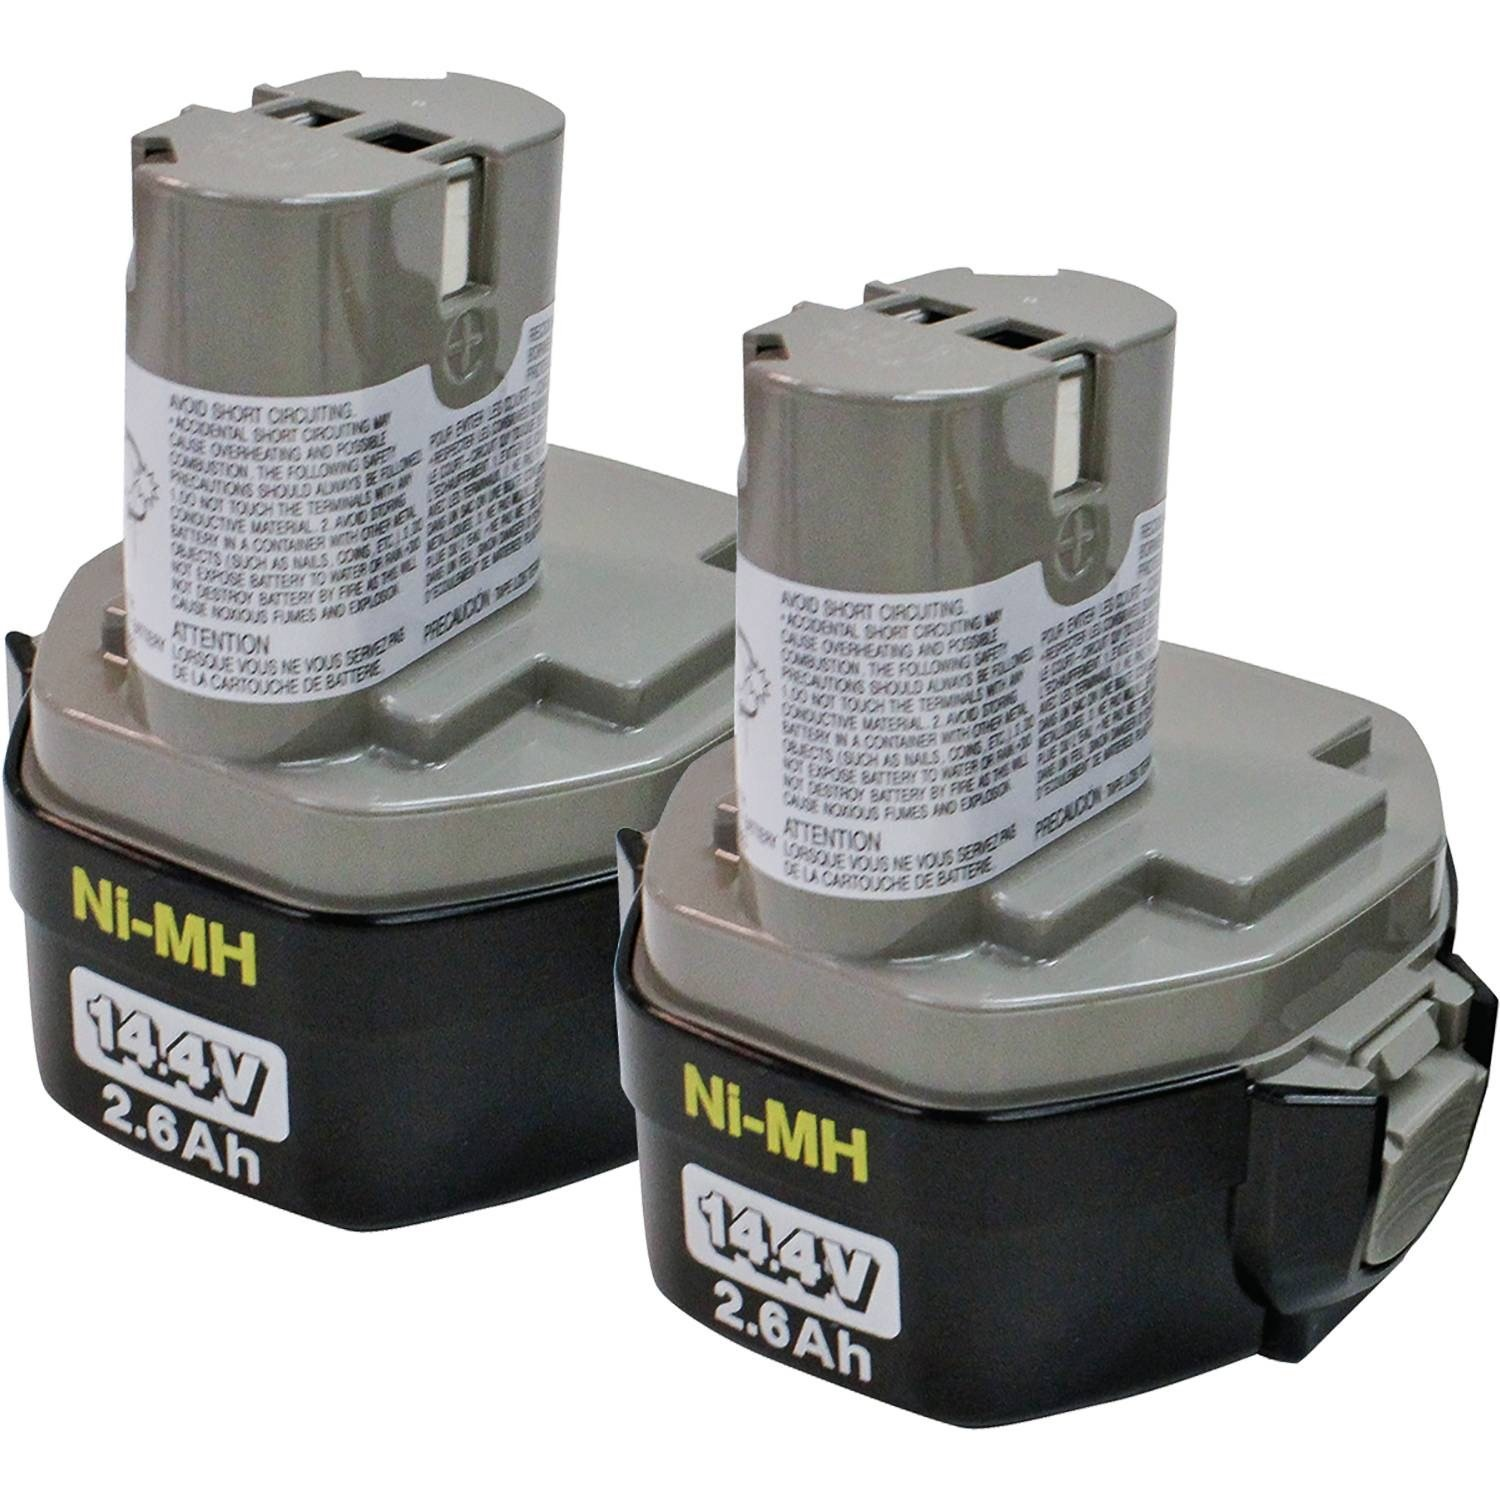 Makita 194157-8 1434 14.4-Volt 2-3/5-Amp Hour NiMH Pod Style Battery, 2-Pack by Makita